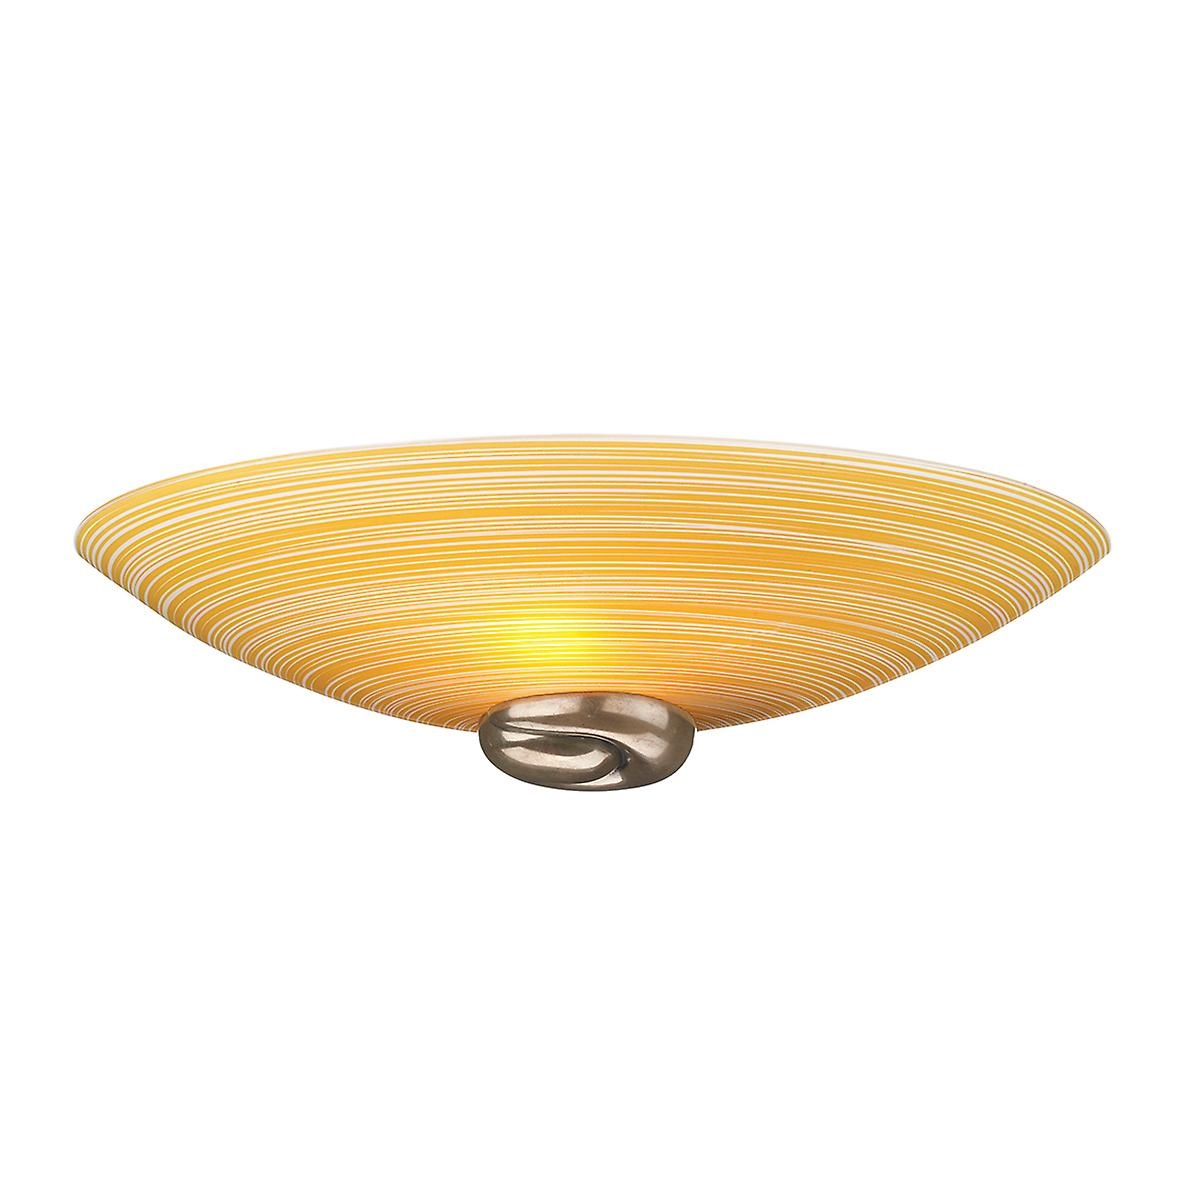 David Hunt SWW0763 Swirl Wall Washer In A Bronze Finish With Italian Amber Glass